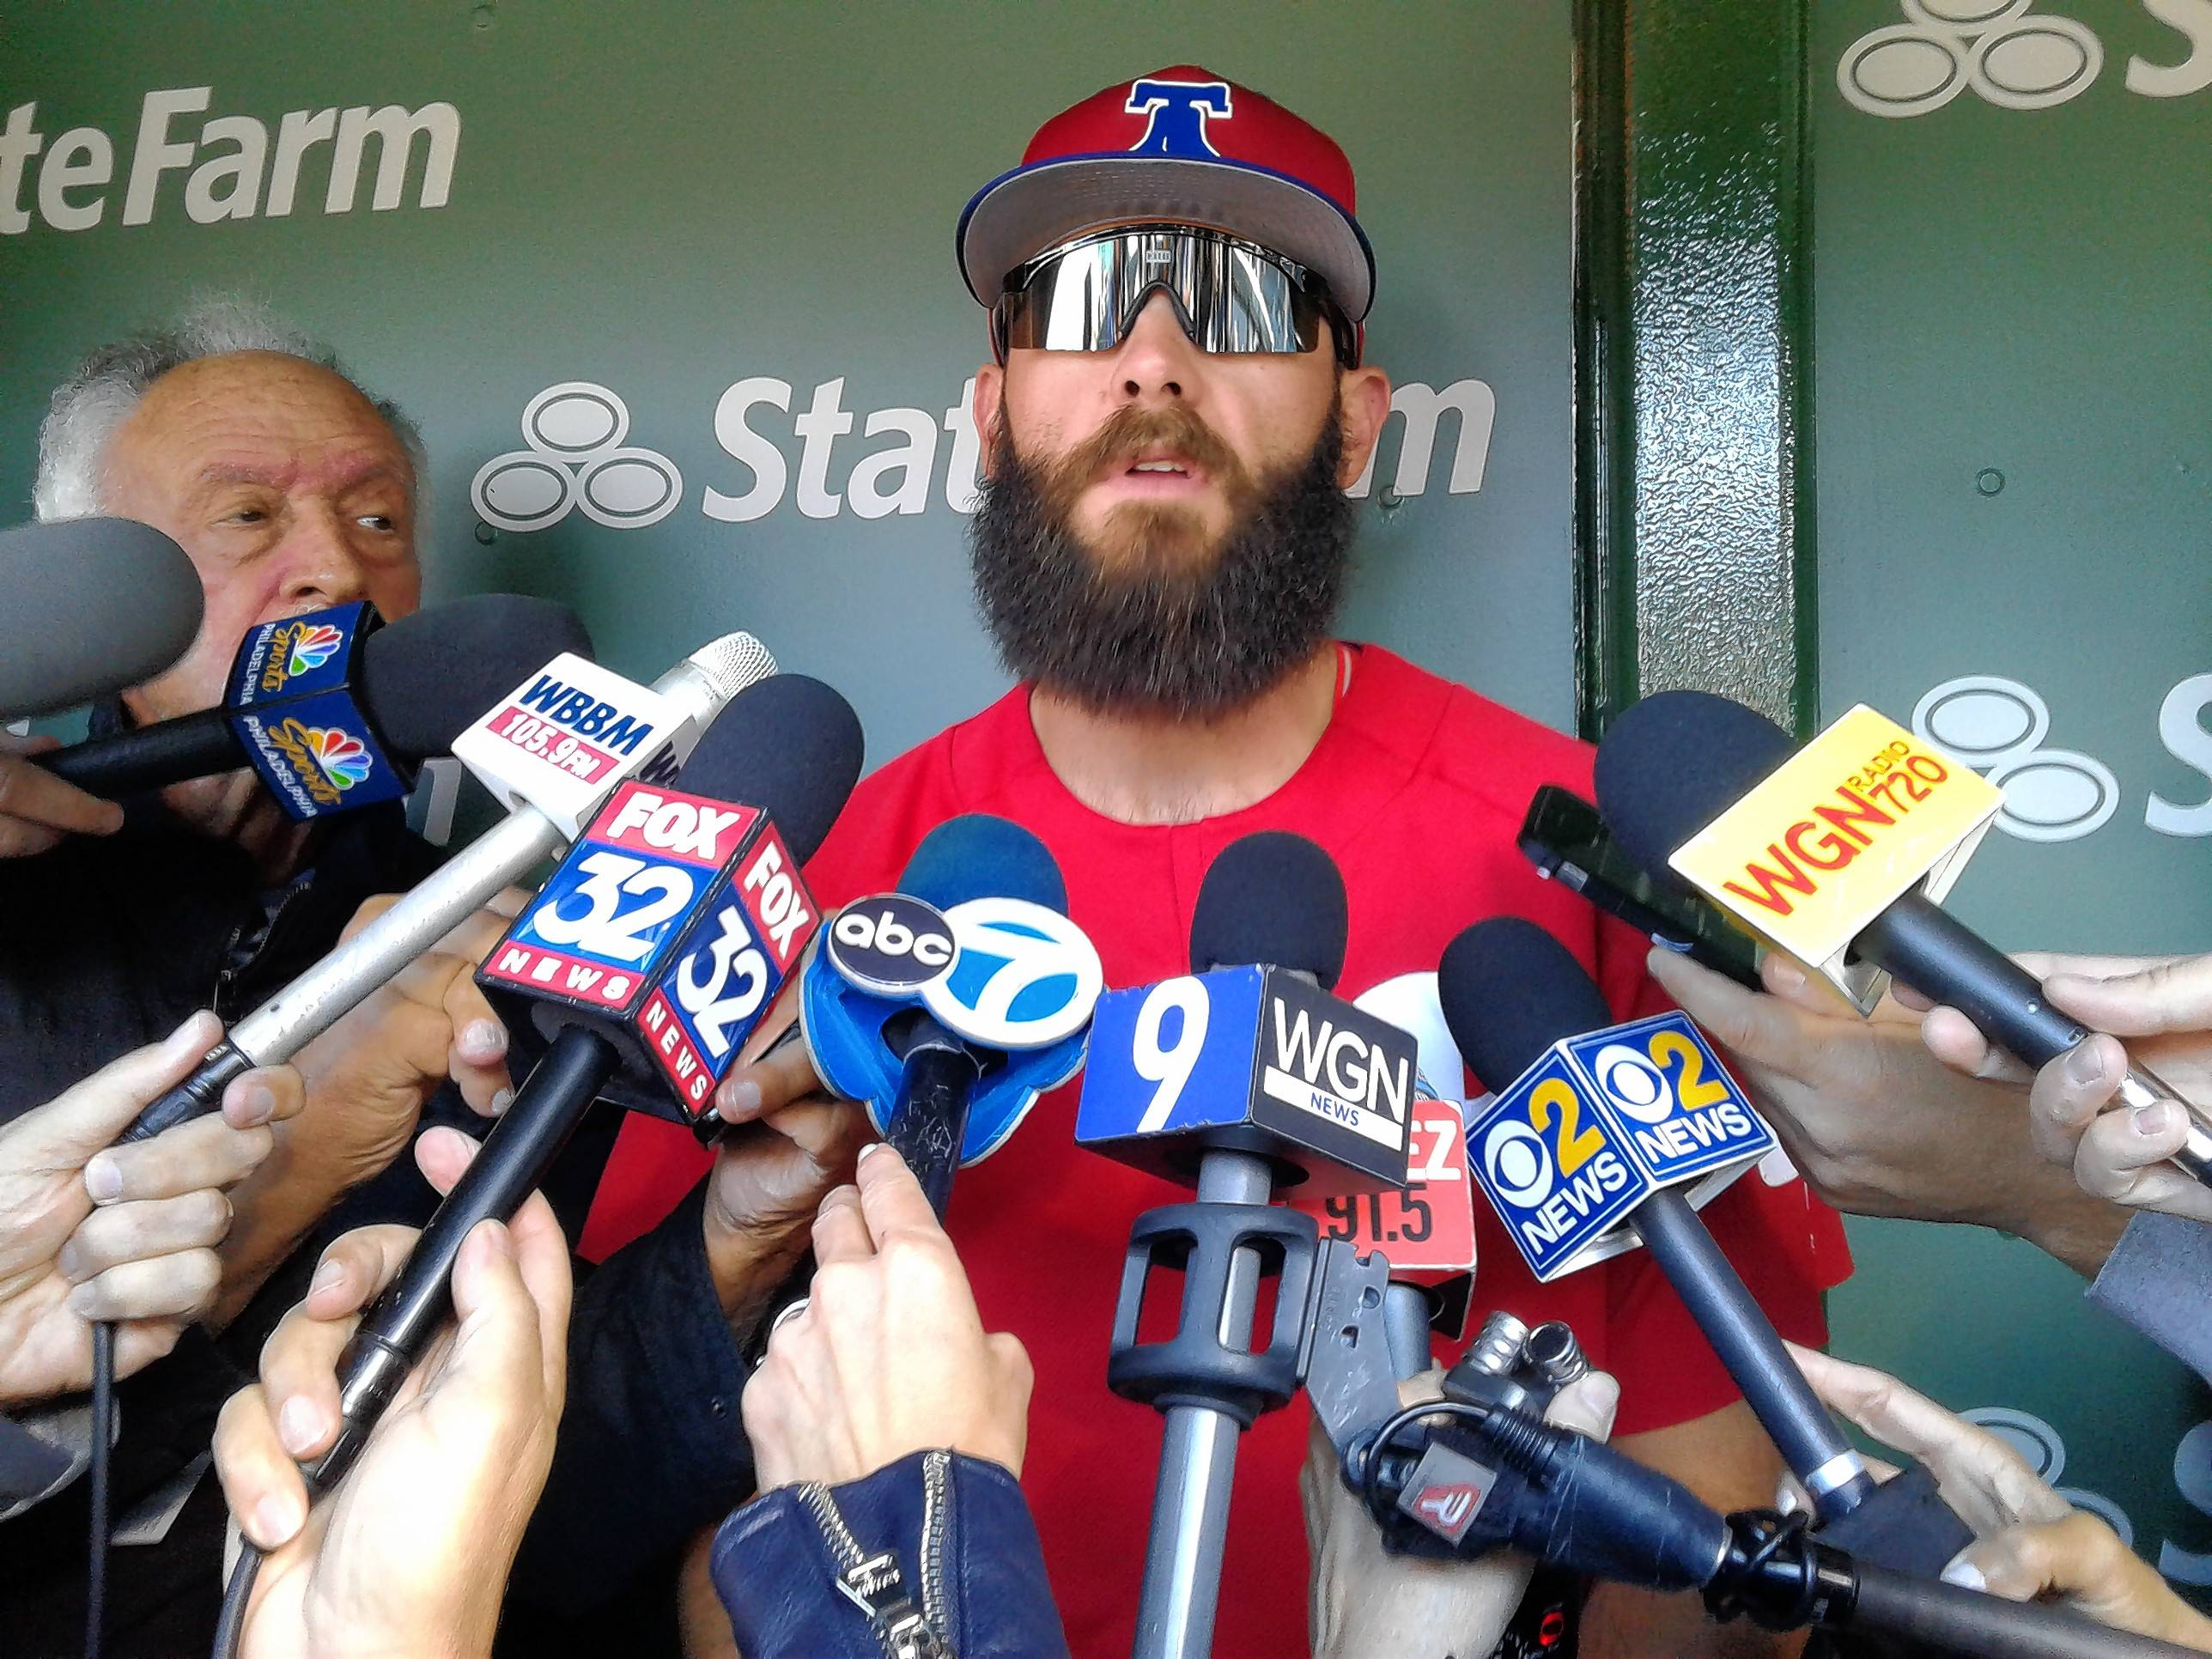 Arrieta returns to Wrigley Field, in a good place